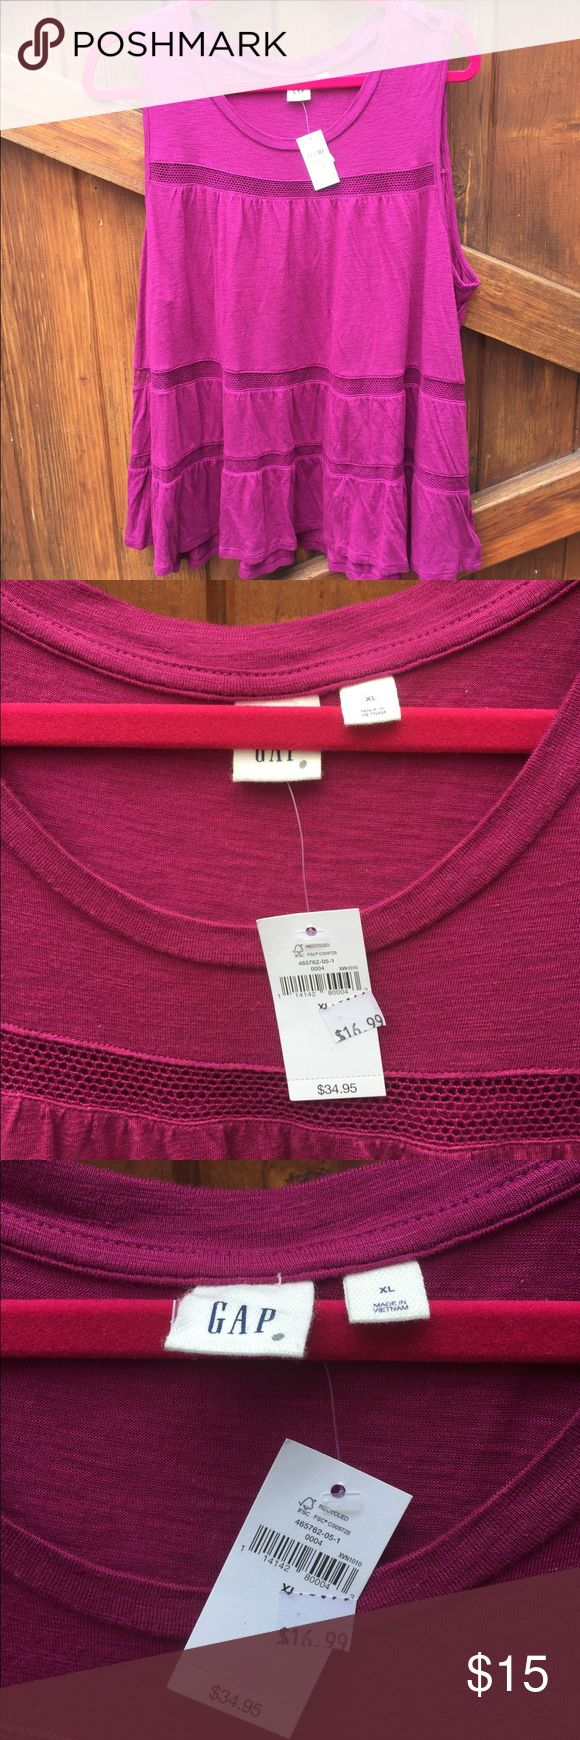 #64 gap purple tank top size xl NWT gap purple tank top size xl . retails for $34.95 and on sale for $16.99 GAP Tops Tank Tops